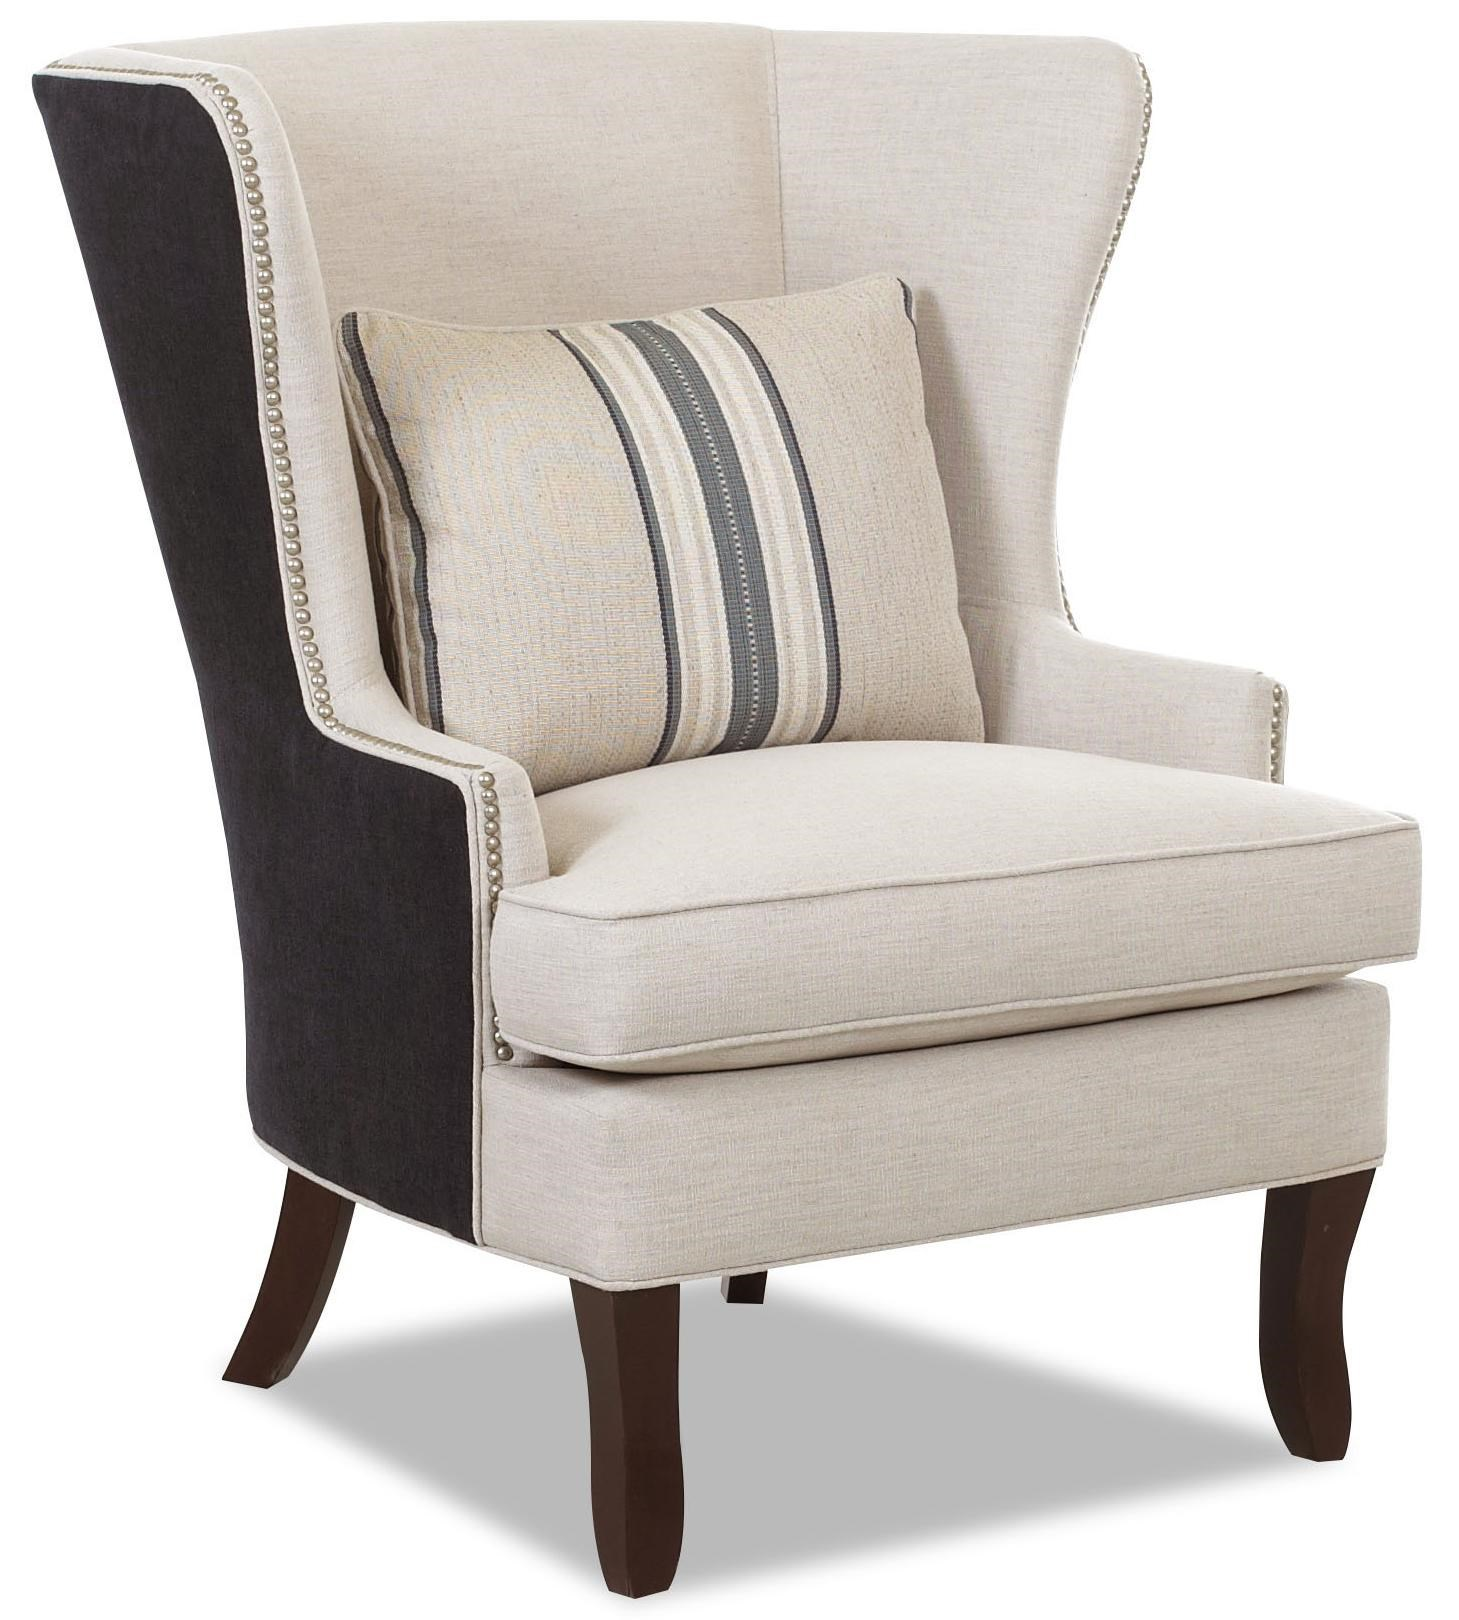 Chairs And Accents D9410 C Transitional Krauss Wing Chair With Nail Head  Trim By Klaussner